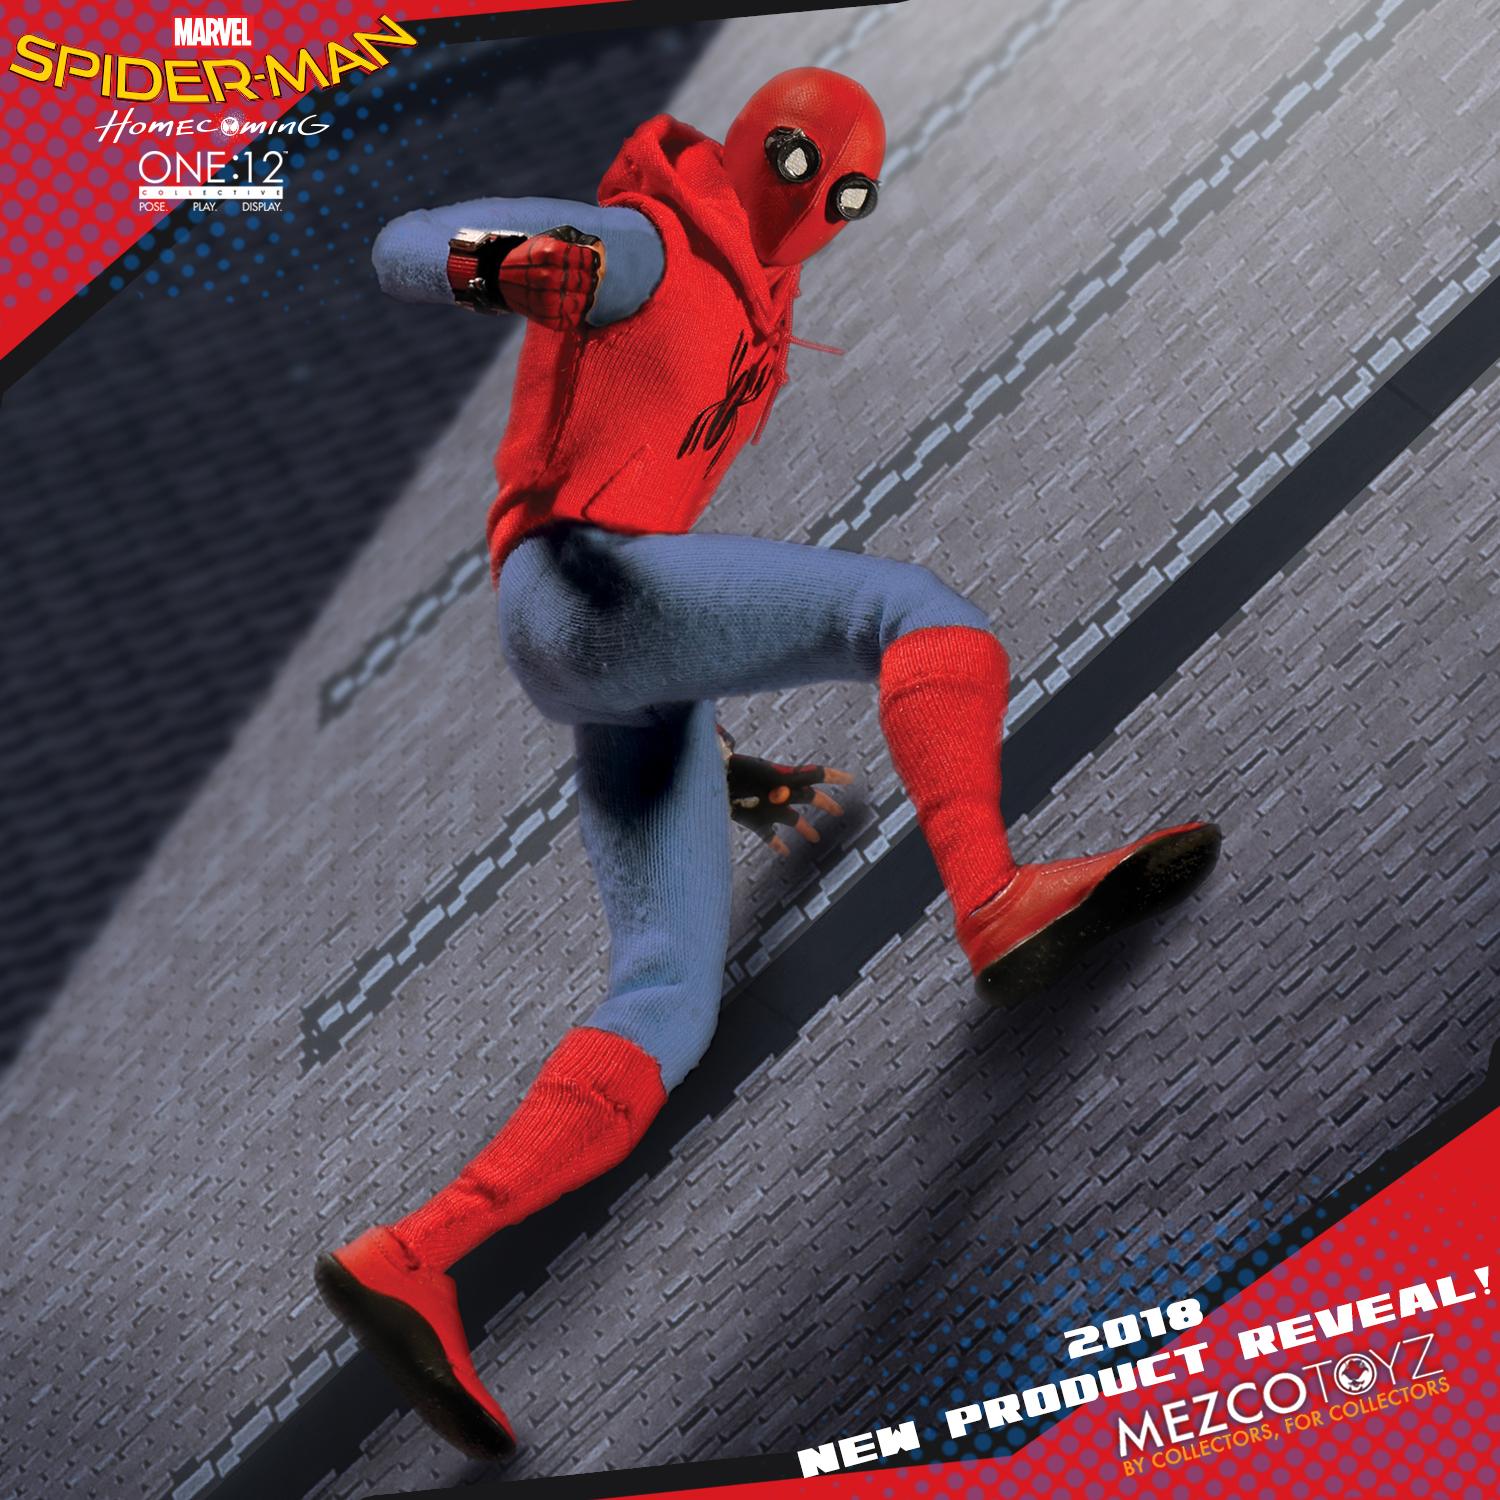 mezco-spiderman-homemade-suit-action-figure